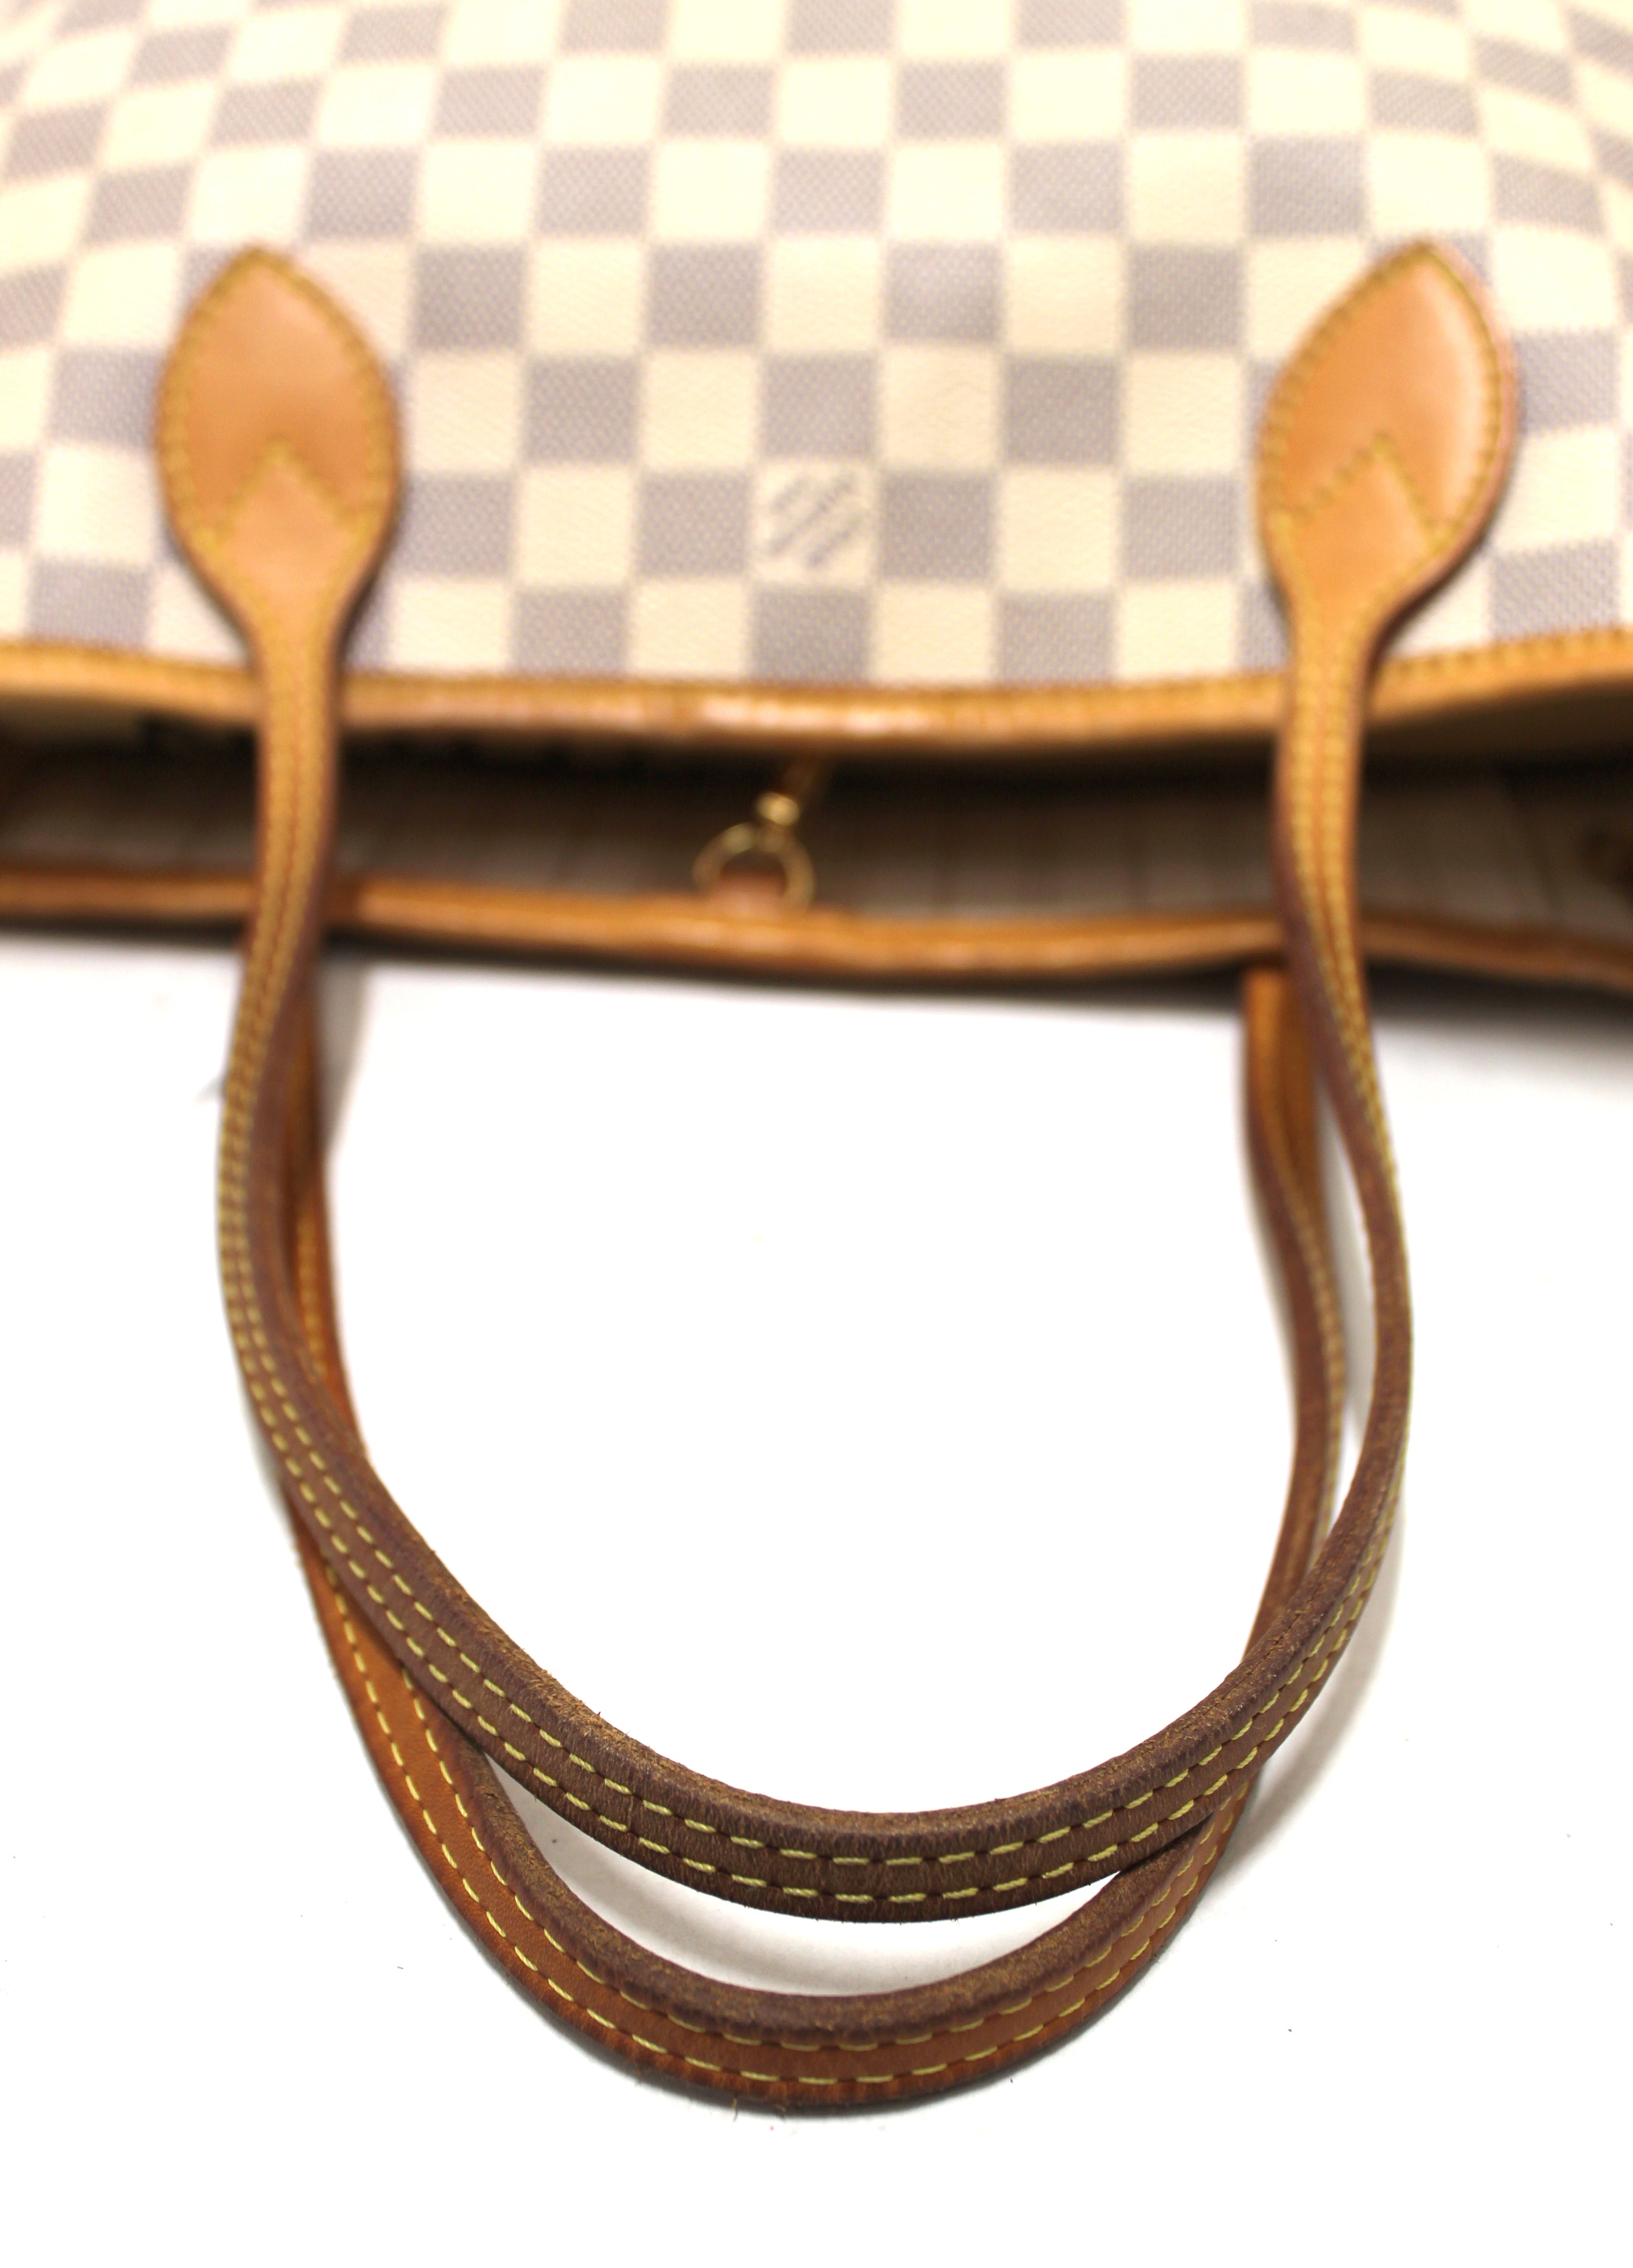 Authentic Louis Vuitton Damier Azur Canvas Neverfull PM Shoulder Tote Bag